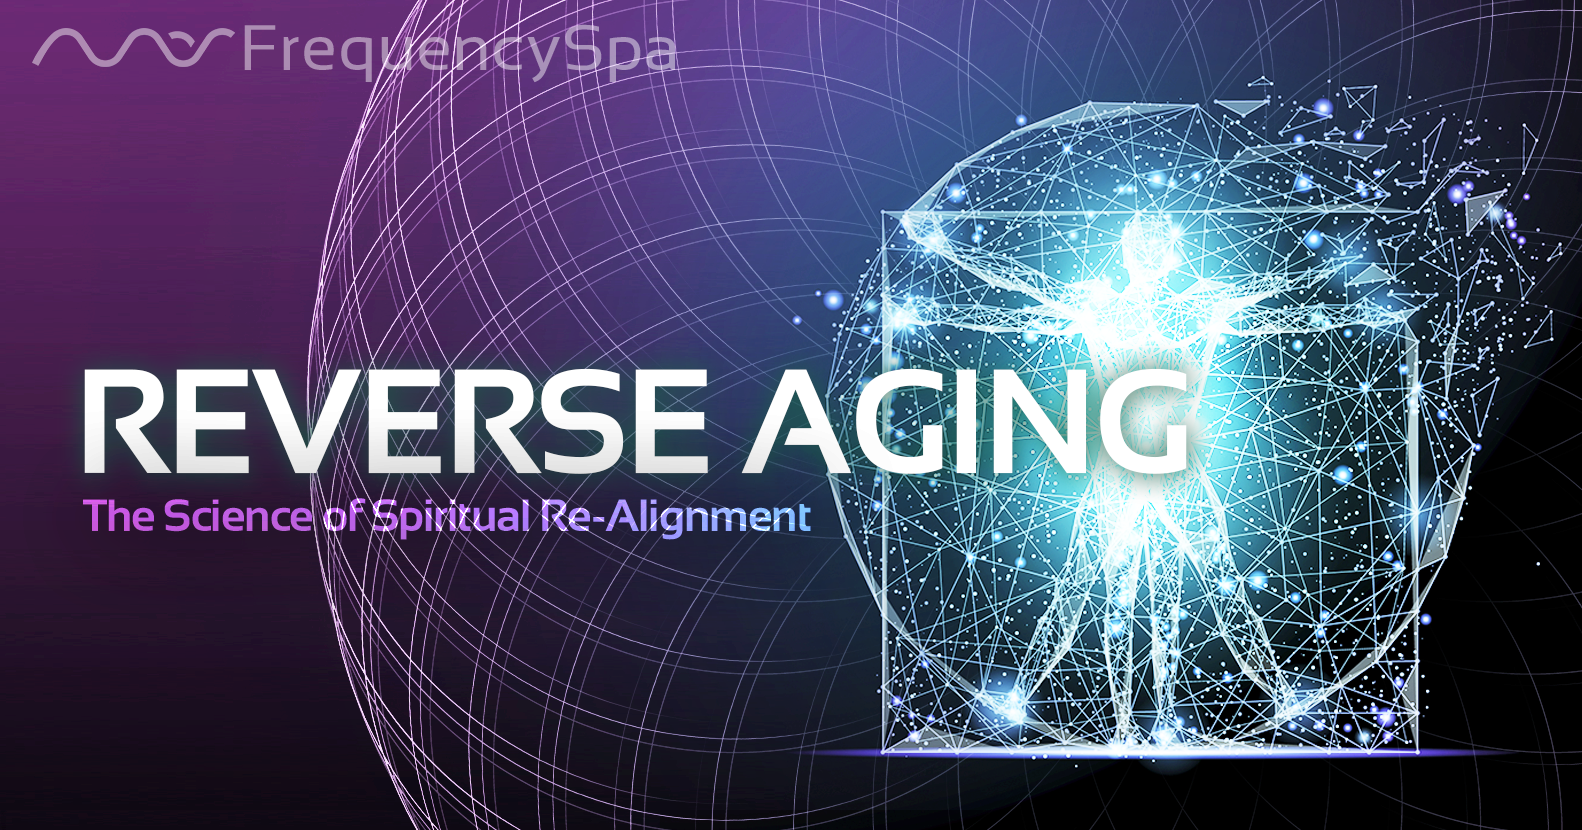 mas-sajady-live-frequency-spa-reverse-aging-3.png